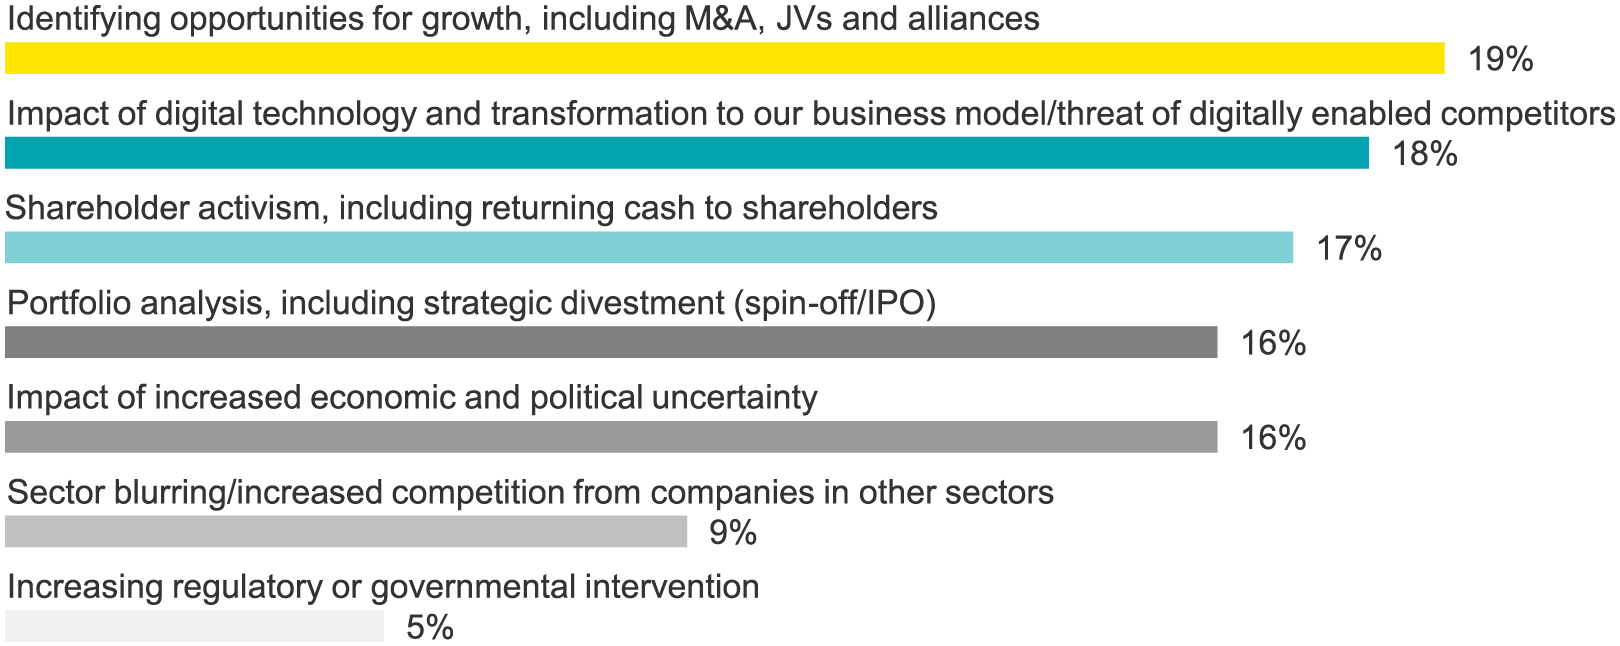 Which of the following will be most prominent on your boardroom thinking during the next six months?